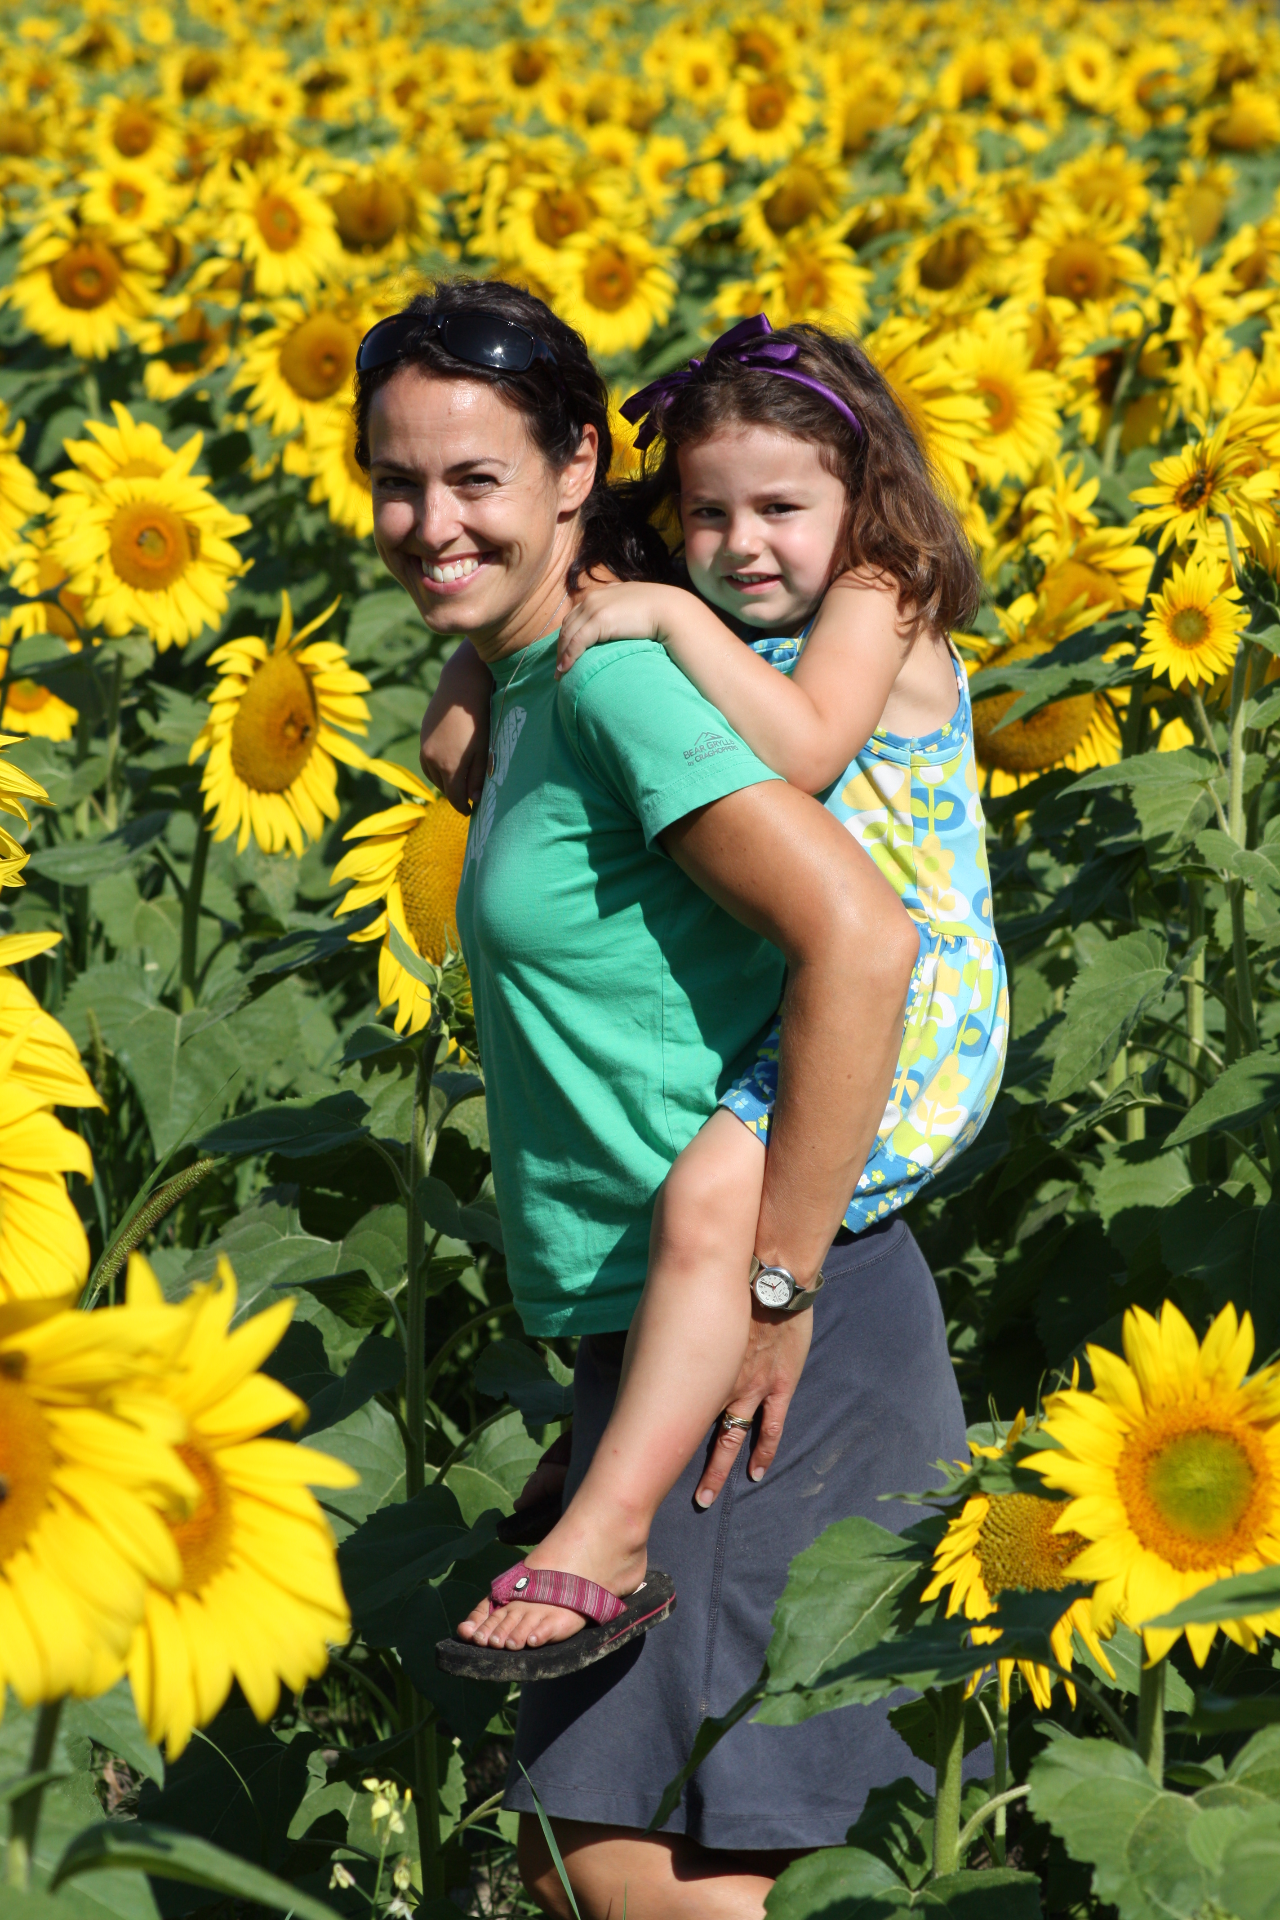 Pilar & Sahali in the sunflowers